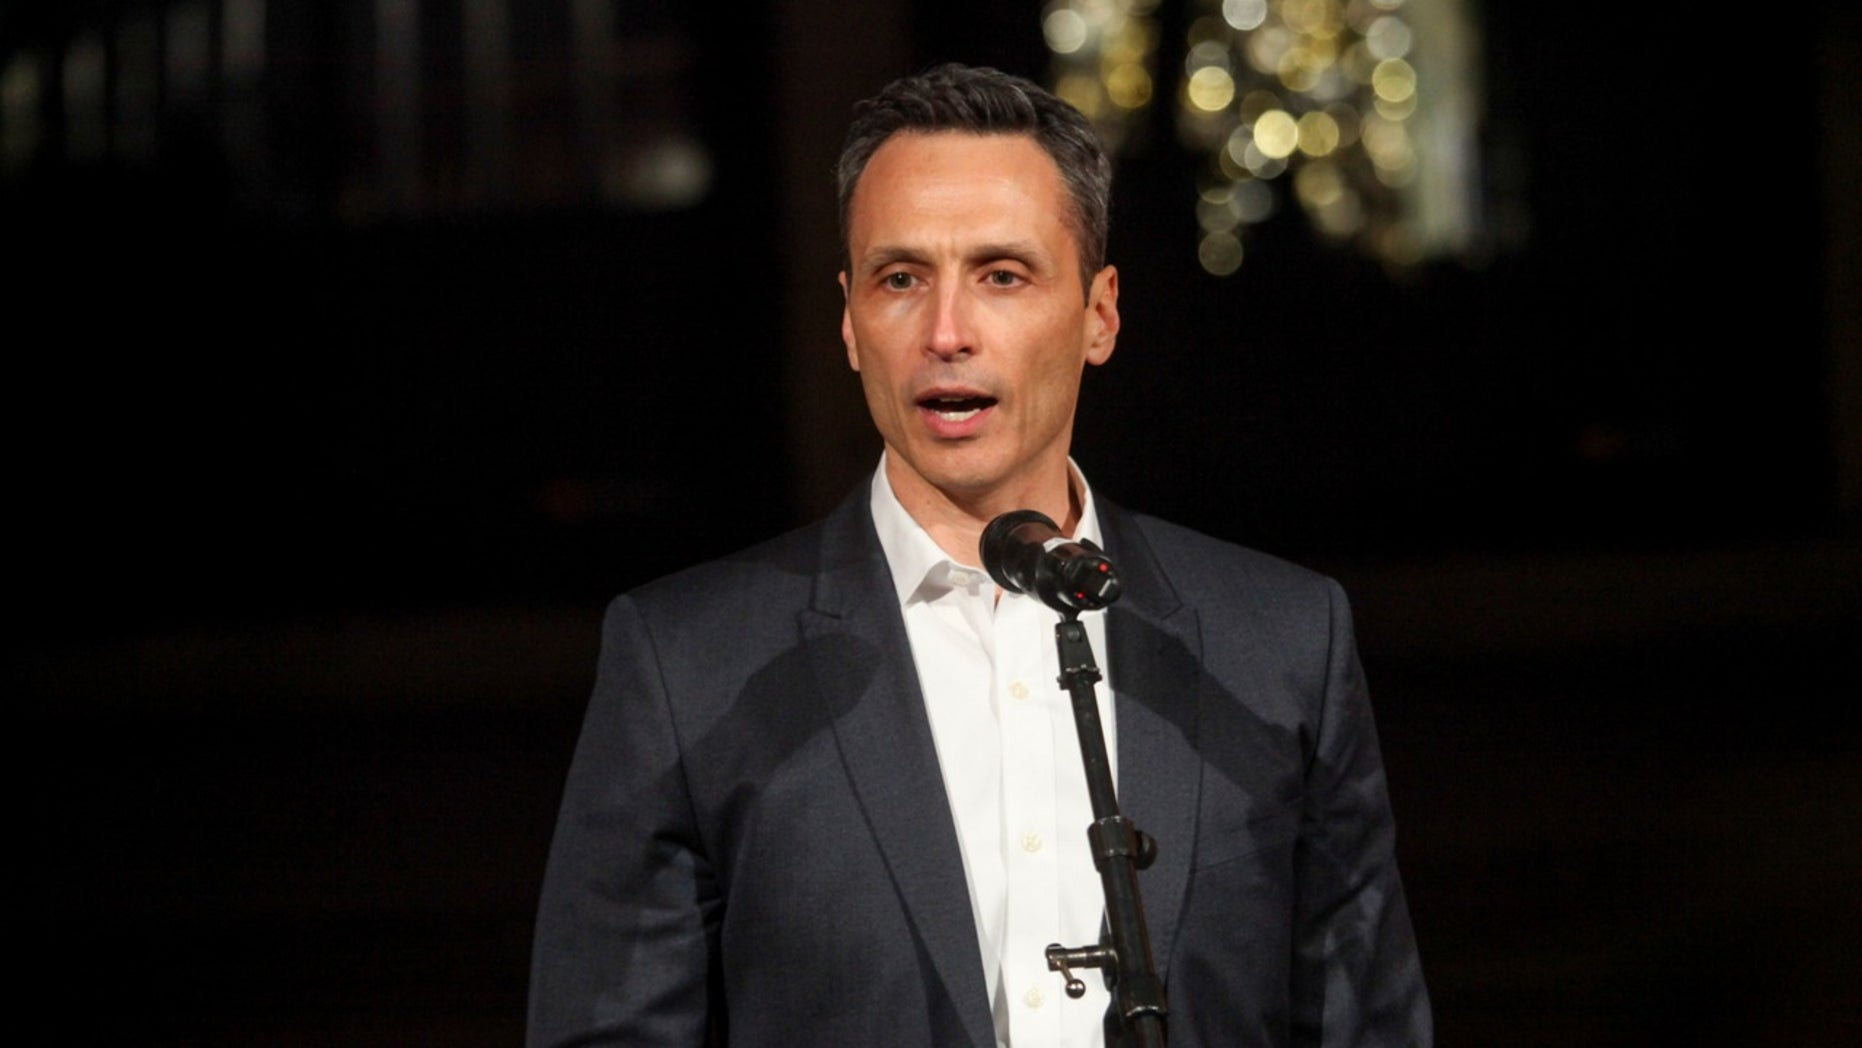 ESPN's president Jimmy Pitaro said the network wouldn't air national anthem broadcasts during its Monday Night Football games.